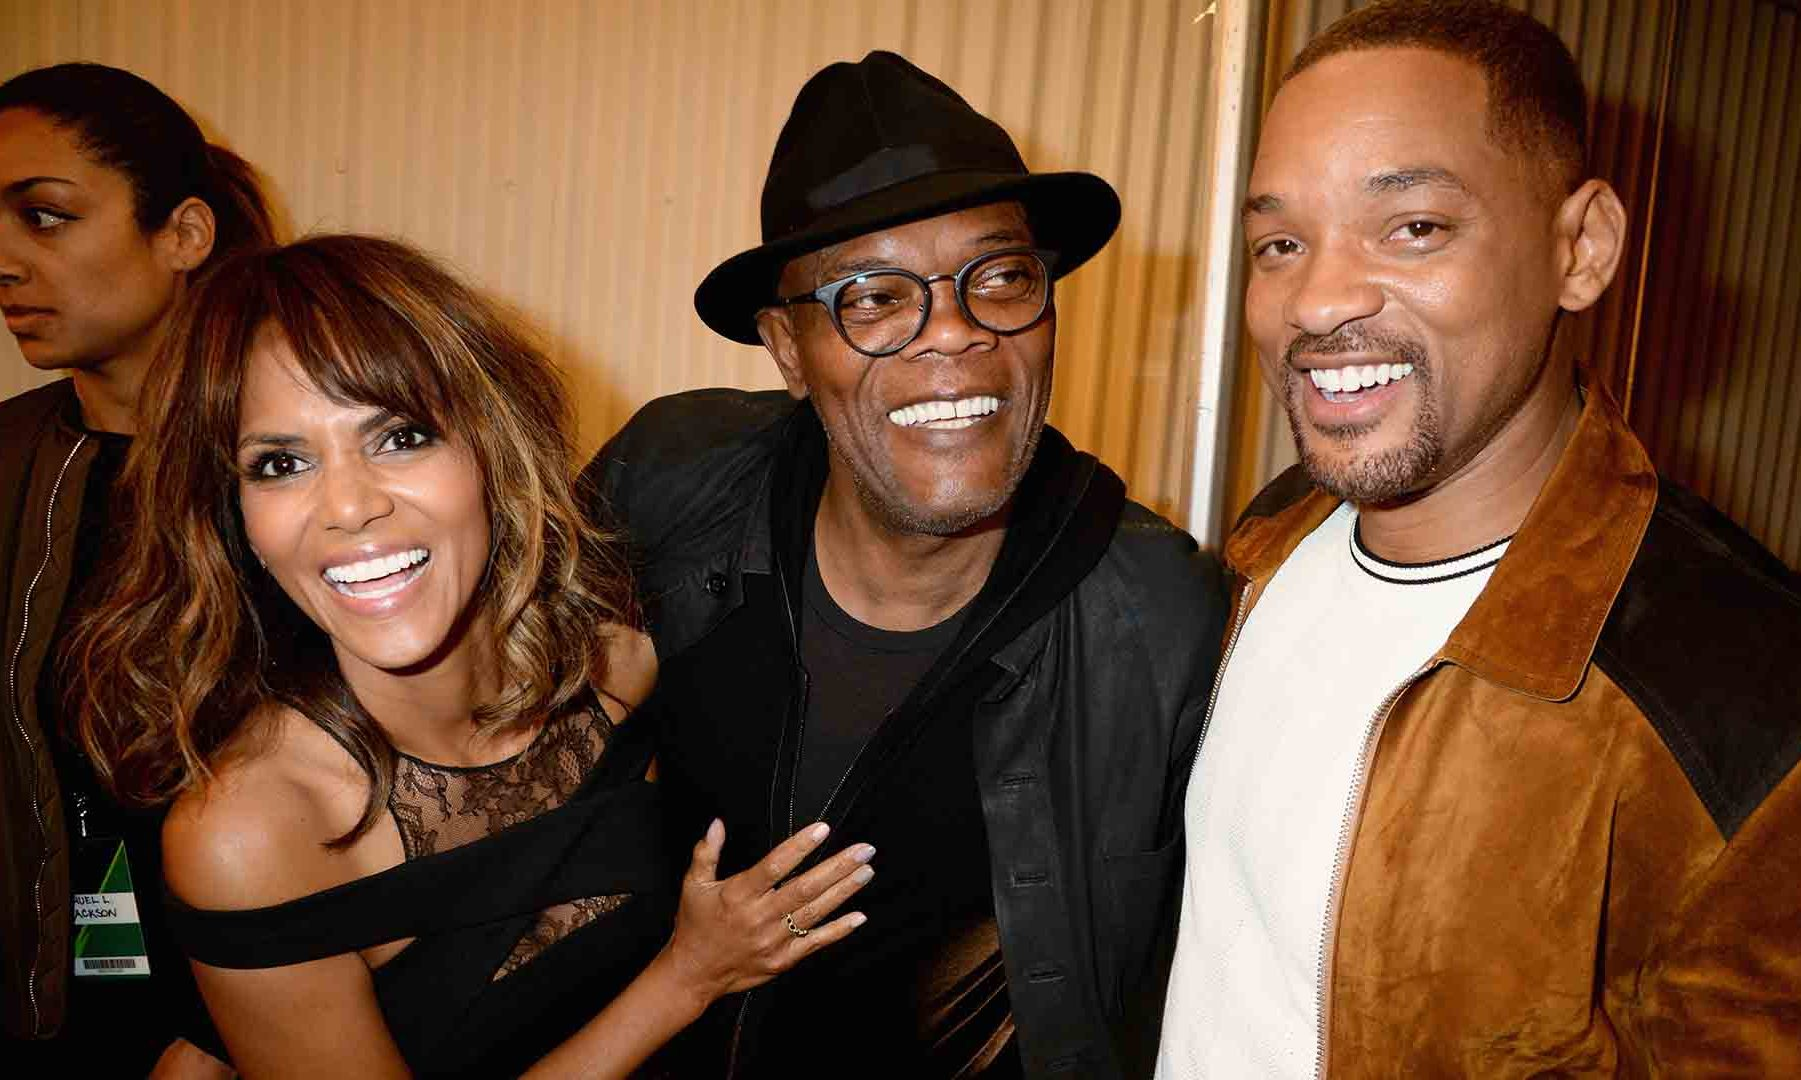 Halle Berry and Samuel L. Jackson helped salute their friend and Generation Award recipient Will Smith at the MTV Movie Awards. 